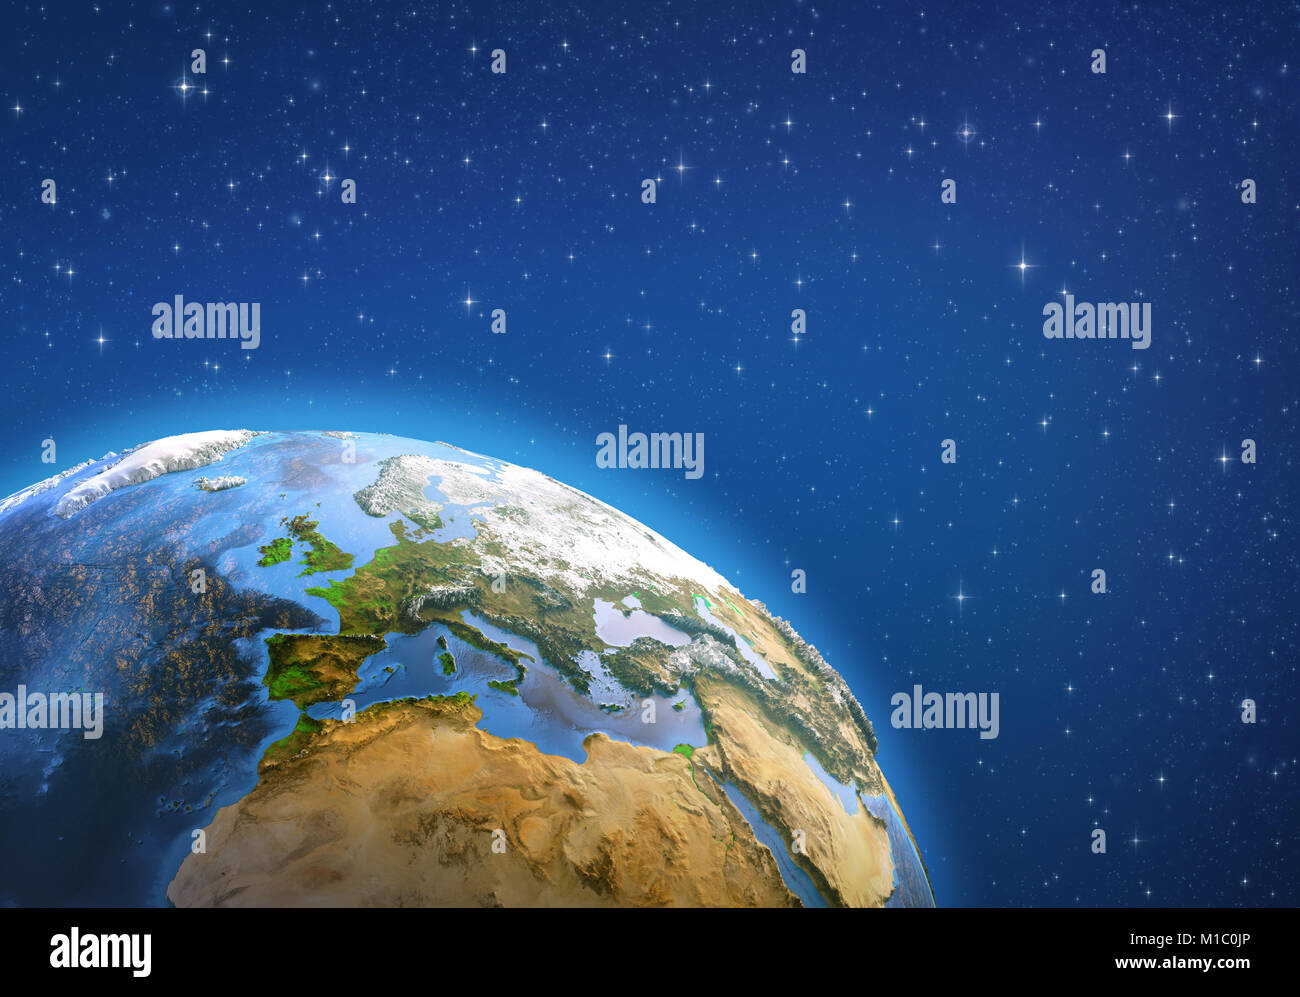 Planet Earth in deep space, focused on Western Europe. 3D illustration - Elements of this image furnished by NASA. - Stock Image